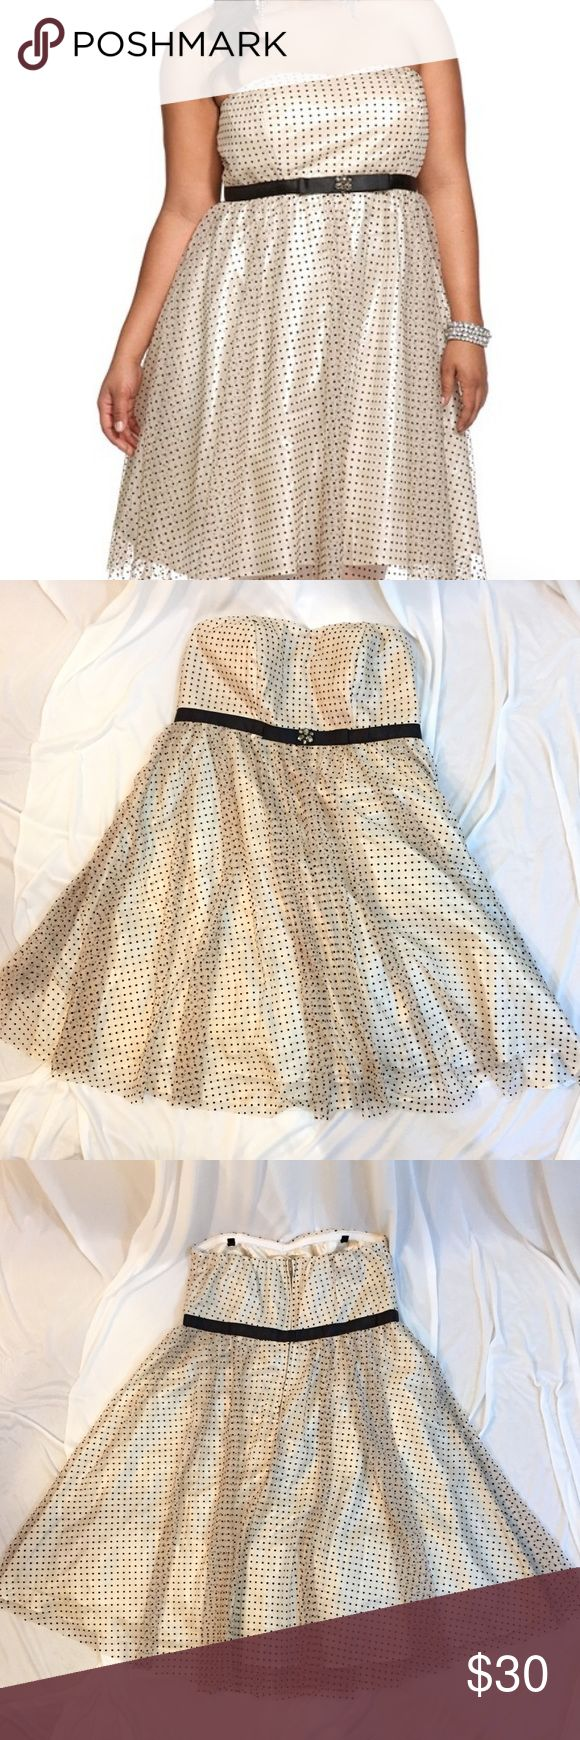 Torrid Polka Dot Party Dress Excellent used condition! This is a beautiful, cream with black polka dot party dress. Strapless, with a sweetheart neckline. Back zip and hook closure. Inner lining and tulle. Happy to answer further questions! torrid Dresses Strapless